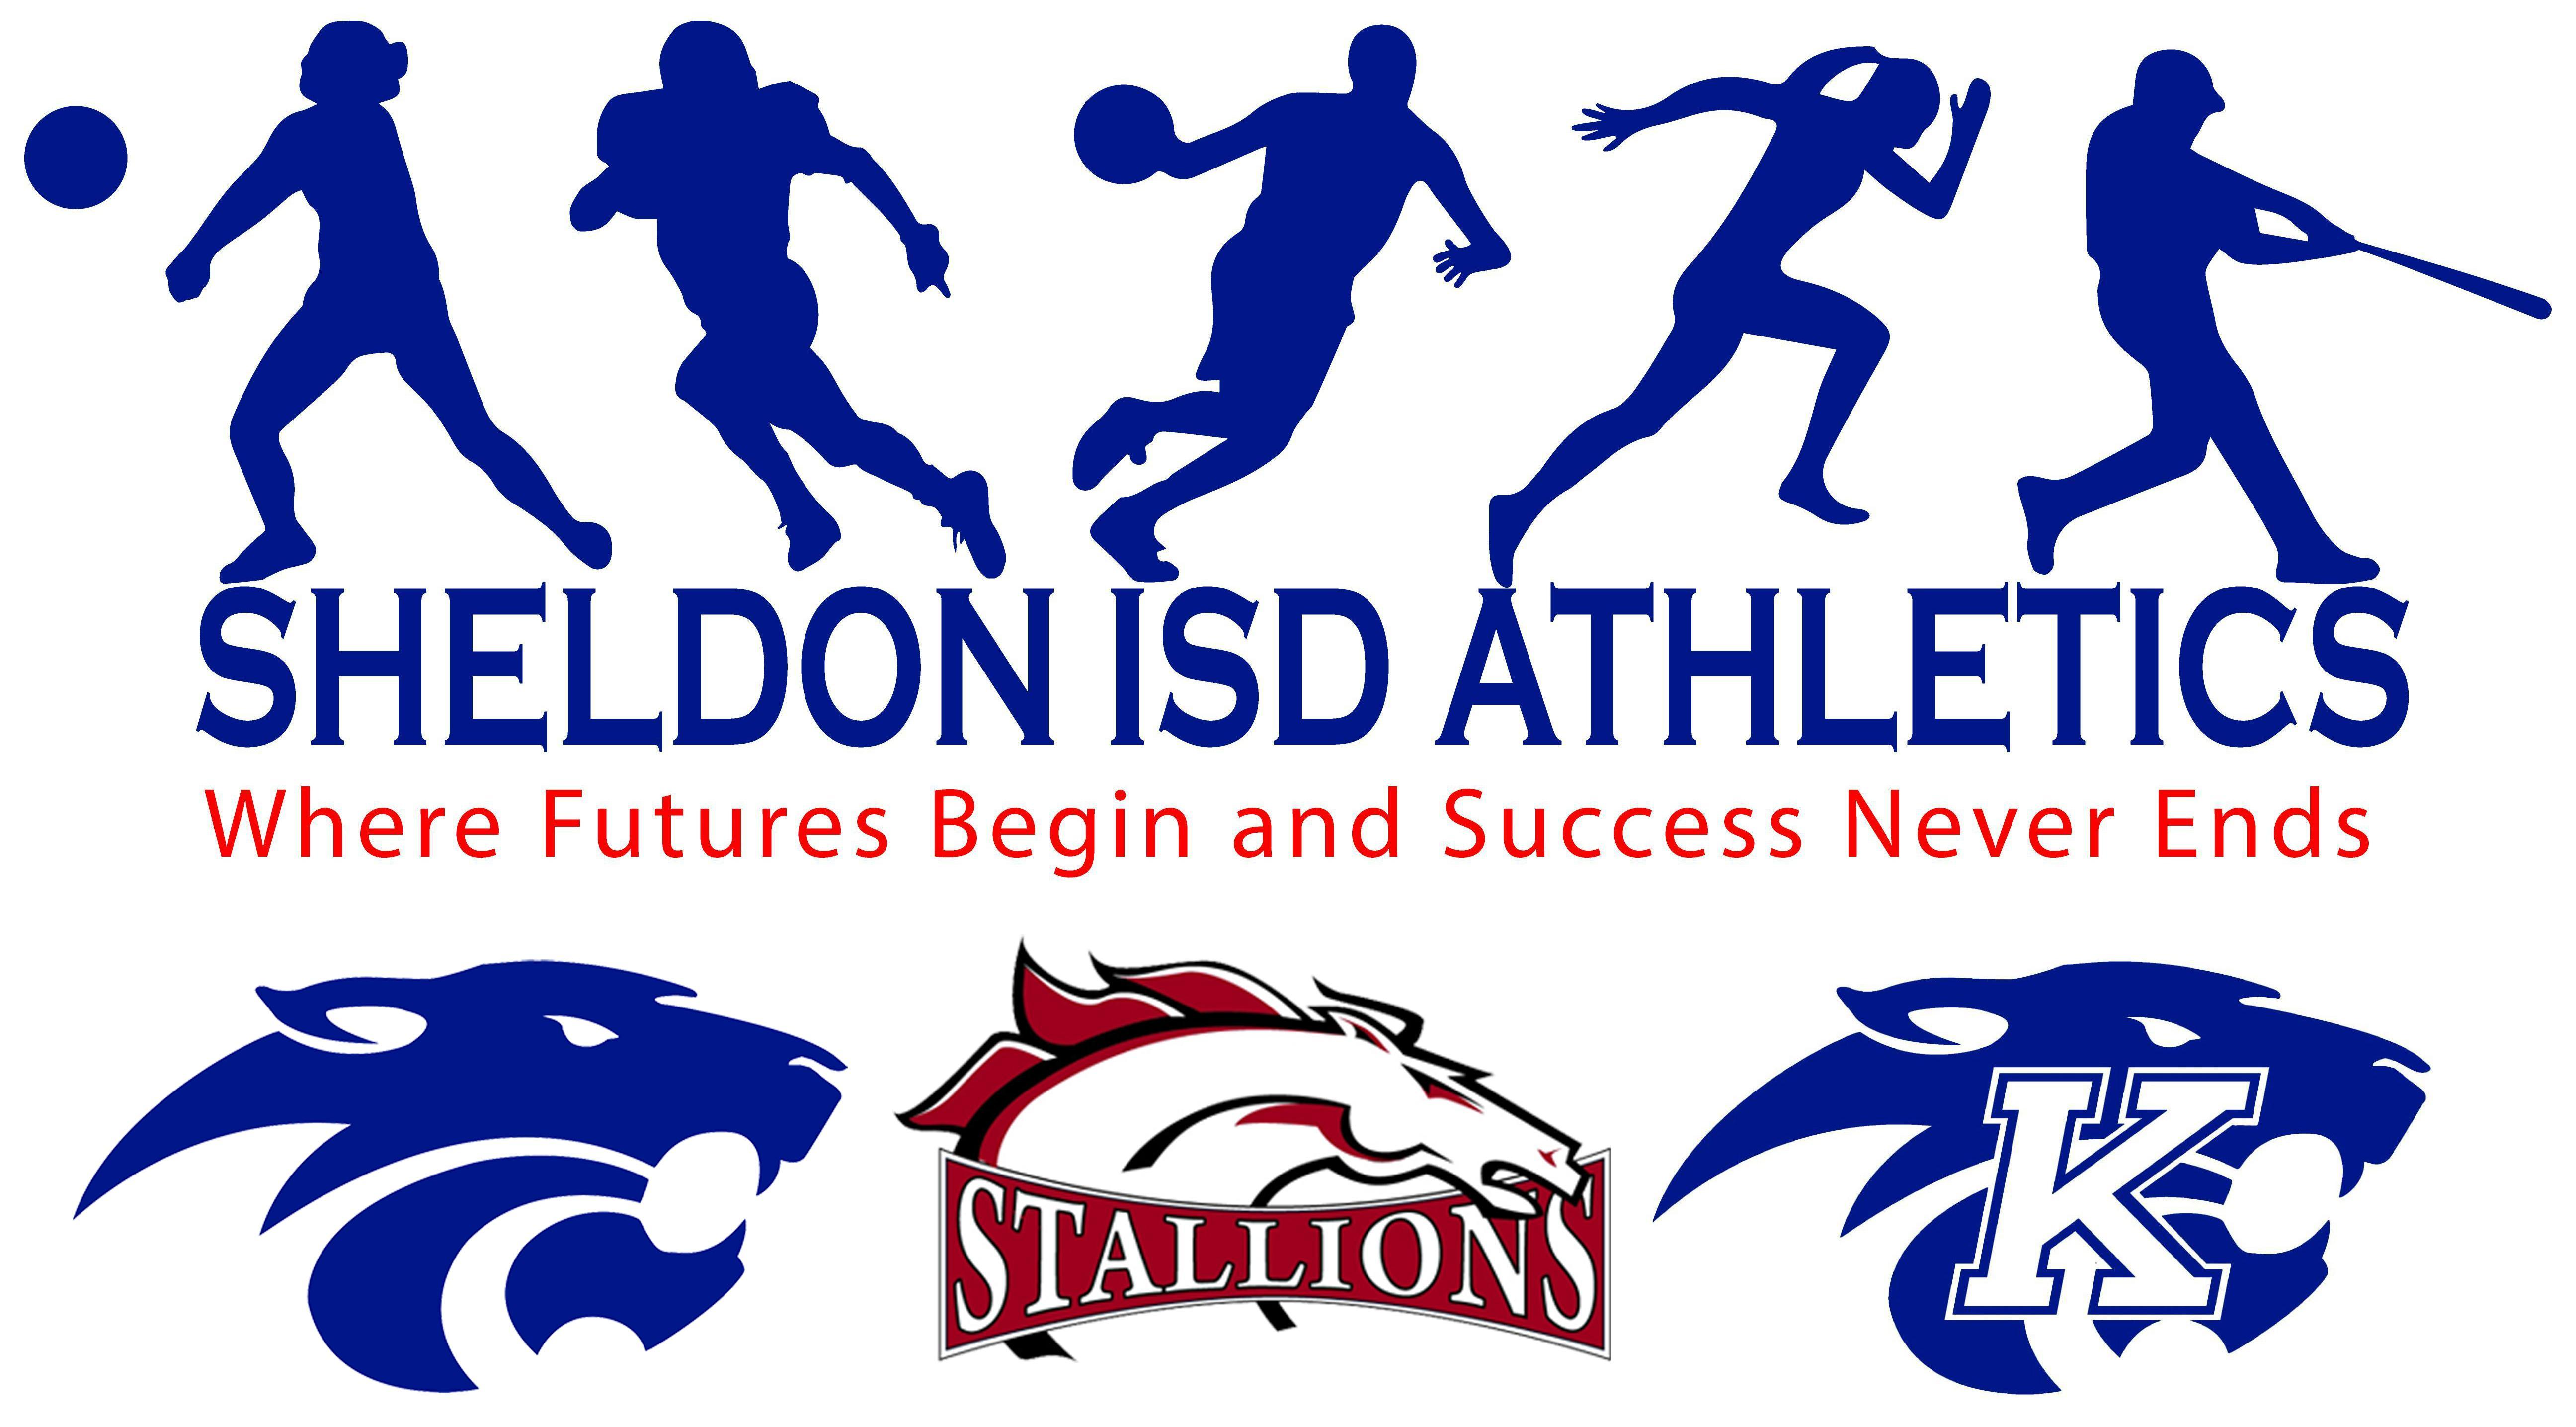 sheldon_isd_athletics_logos_and_slogan